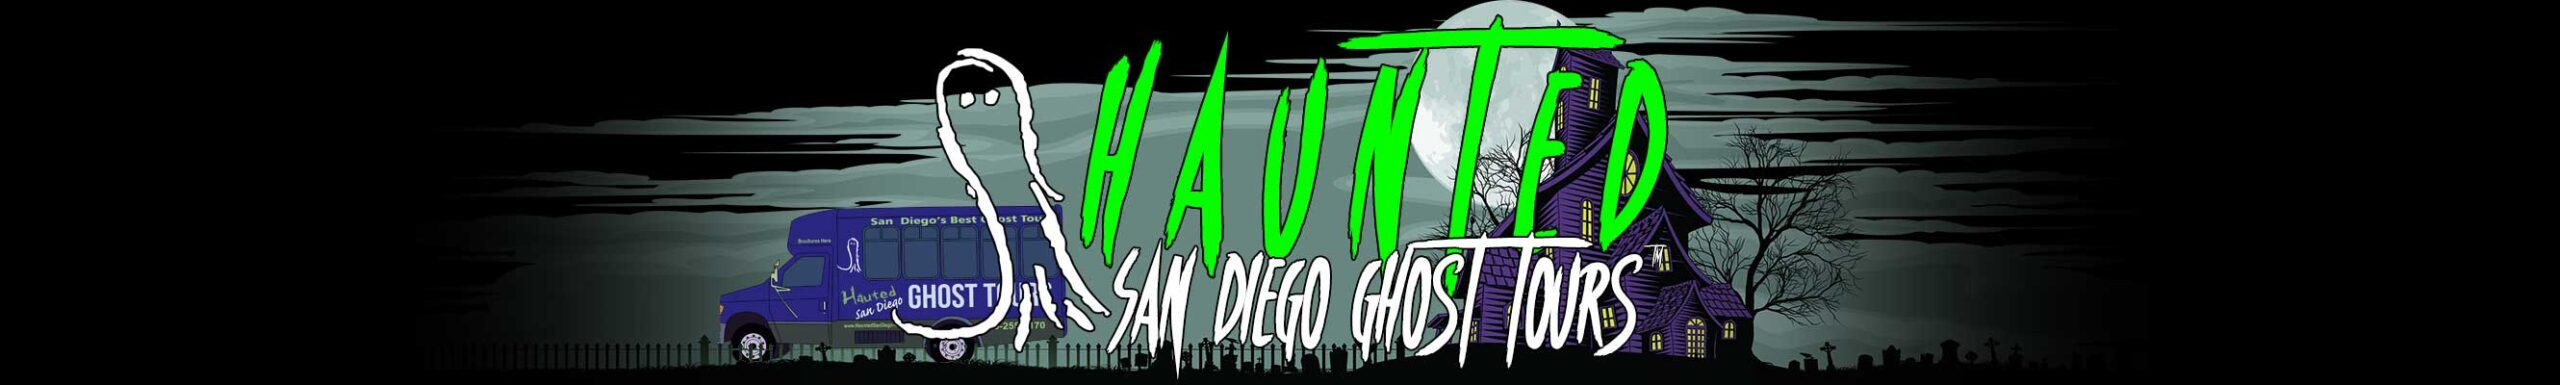 haunted-san-diego-ghost-tour-hero-logo